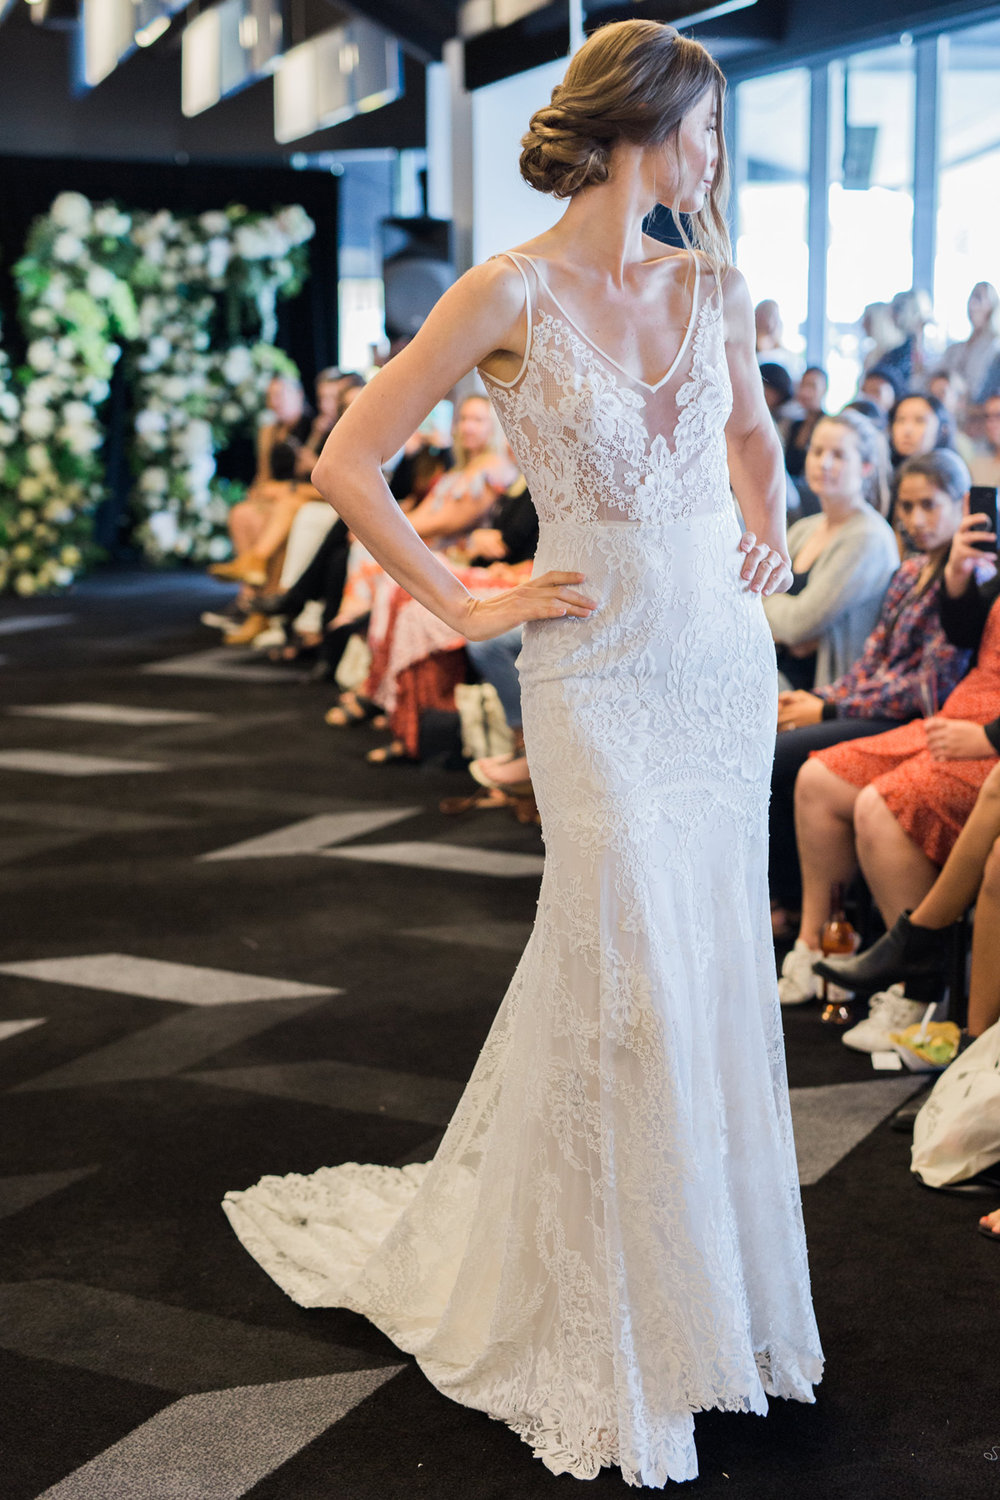 Love-Wedding-Festival-Sydney-Wedding-Gown-Angela-Osagie-39.jpg